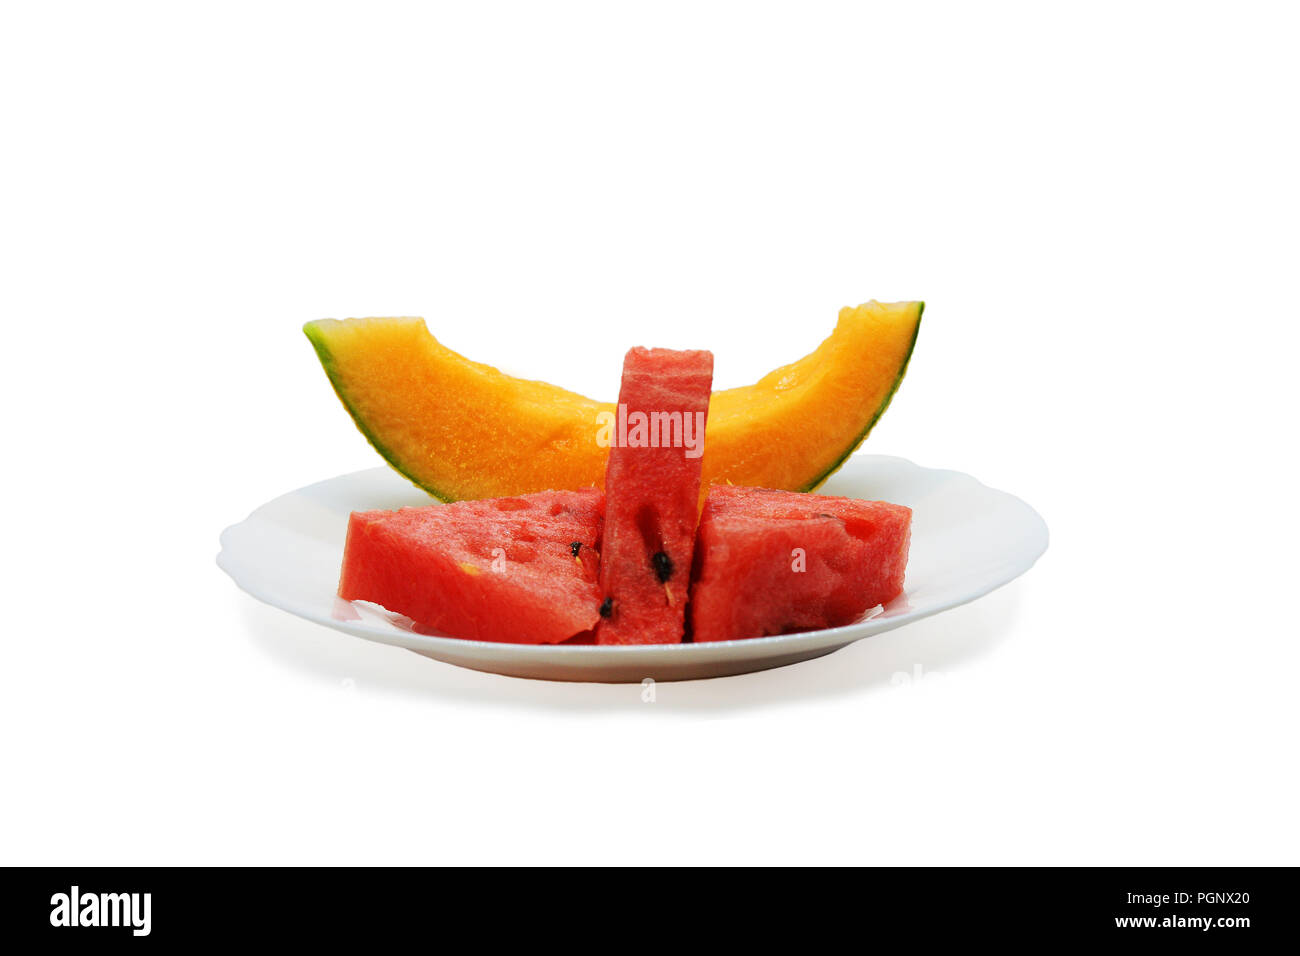 Slices of honeydew melon and watermelon isolated on white plate Stock Photo